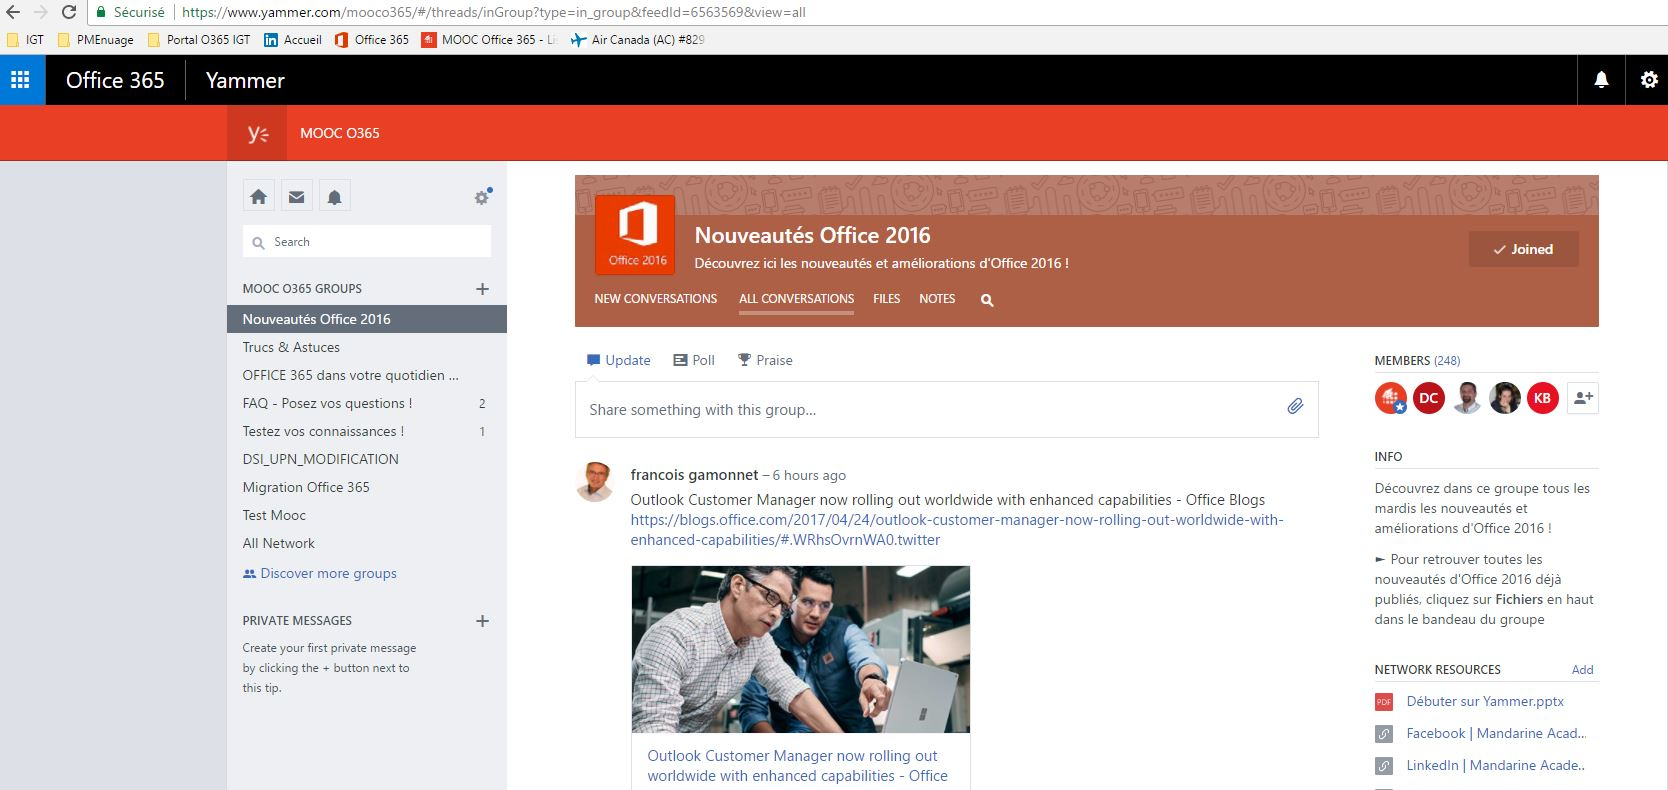 espaces collaboratifs, FAQ dédiés à MS Outlook ou Office 365